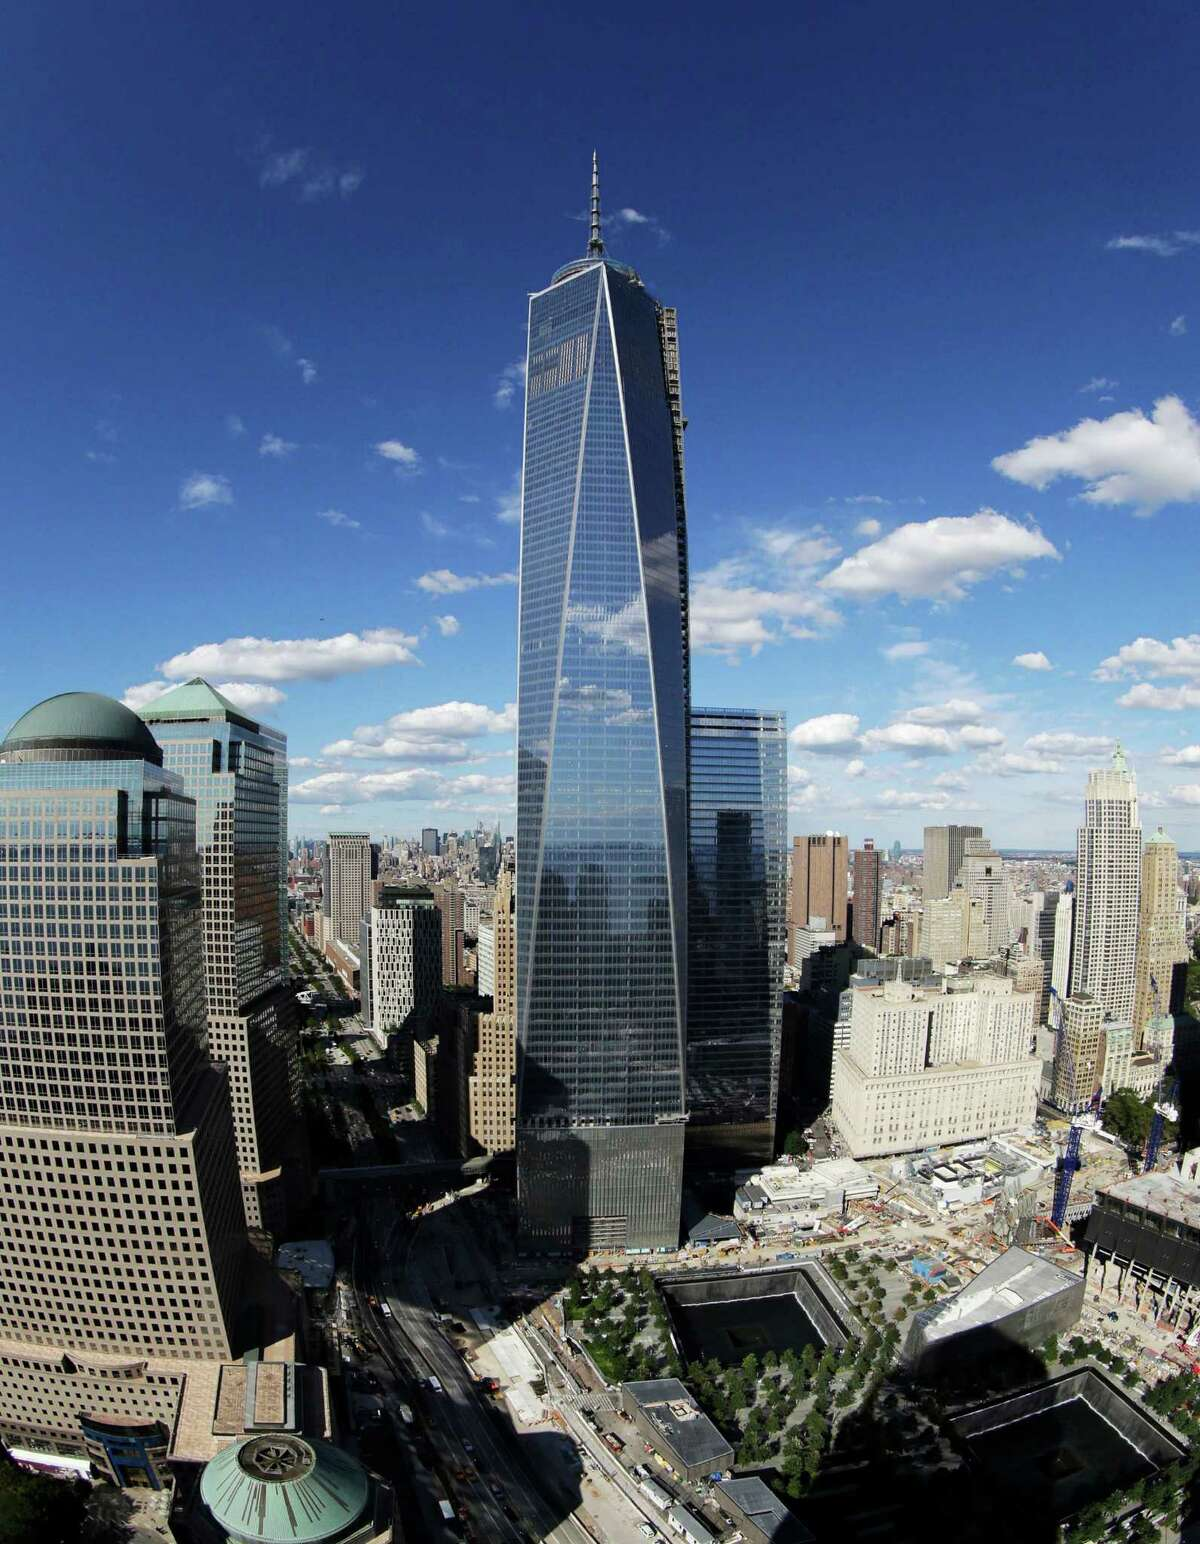 WORLD'S TALLEST BUILDINGS FILE - In this Thursday, Sept. 5, 2013, file photo taken with a fisheye lens, 1 World Trade Center, center, overlooks the wedge-shaped pavilion entrance of the National September 11 Museum, lower right, and the square outlines of the memorial waterfalls in New York. According to the nonprofit Council on Tall Buildings and Urban Habitat, 1 World Trade Center, once completed, will be the third tallest building in the world with a height of 1,776 feet.